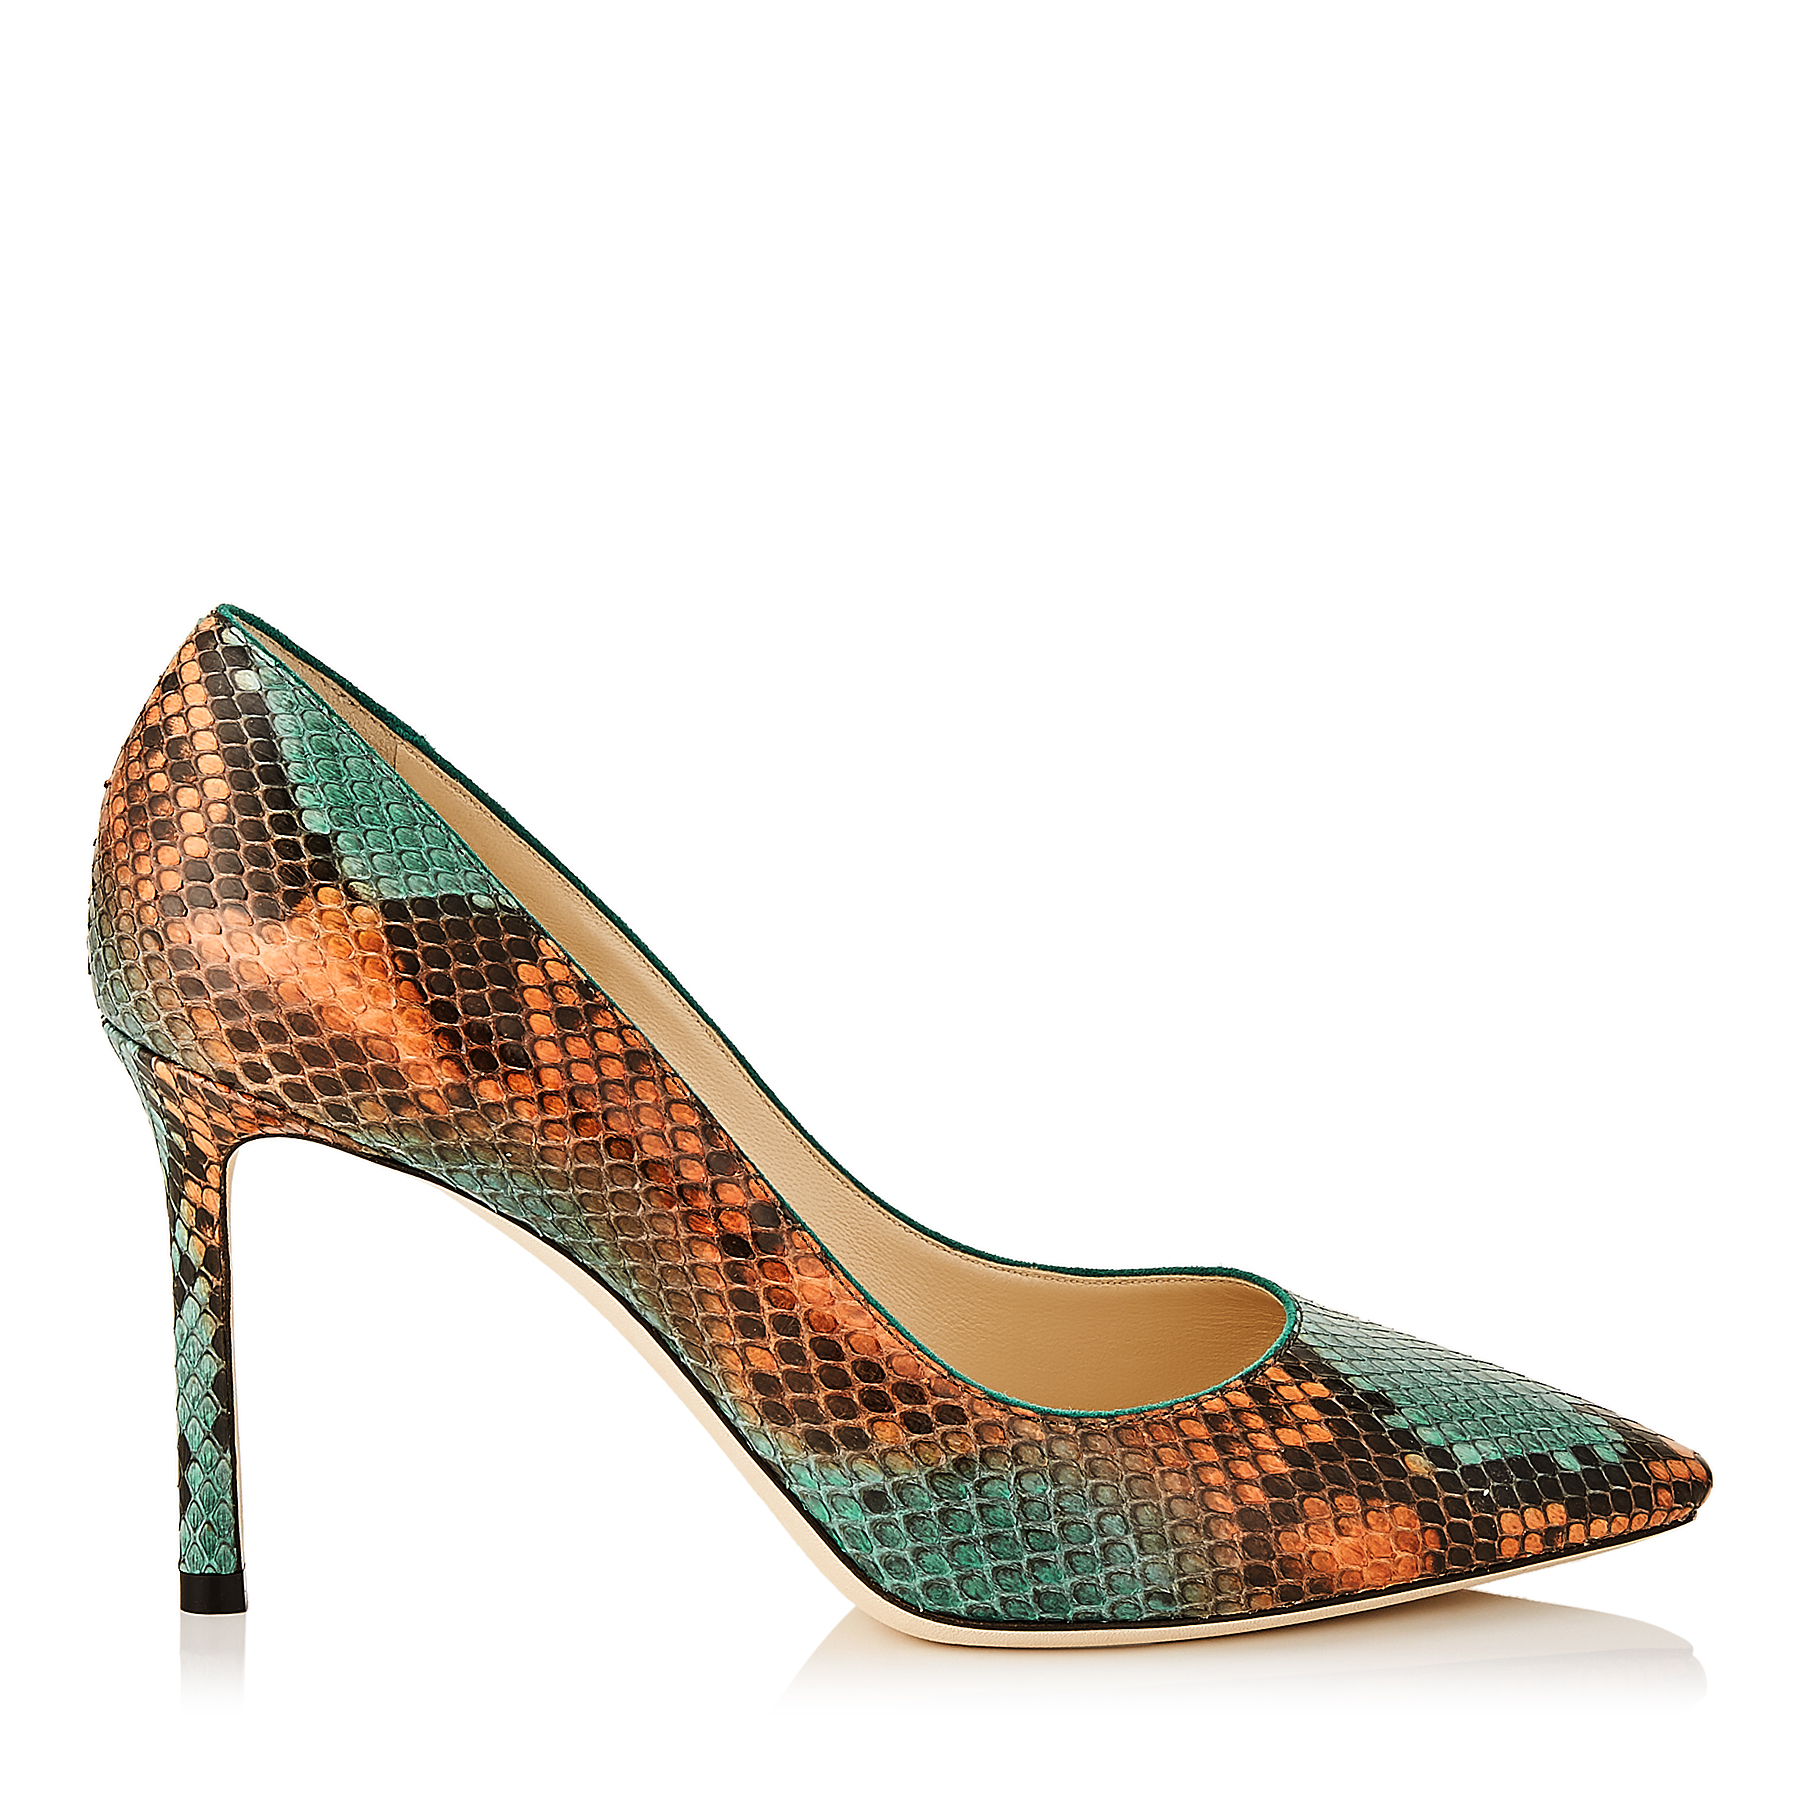 ROMY 85 Calypso and Emerald Dégradé Painted Python Pointy Toe Pumps by Jimmy Choo